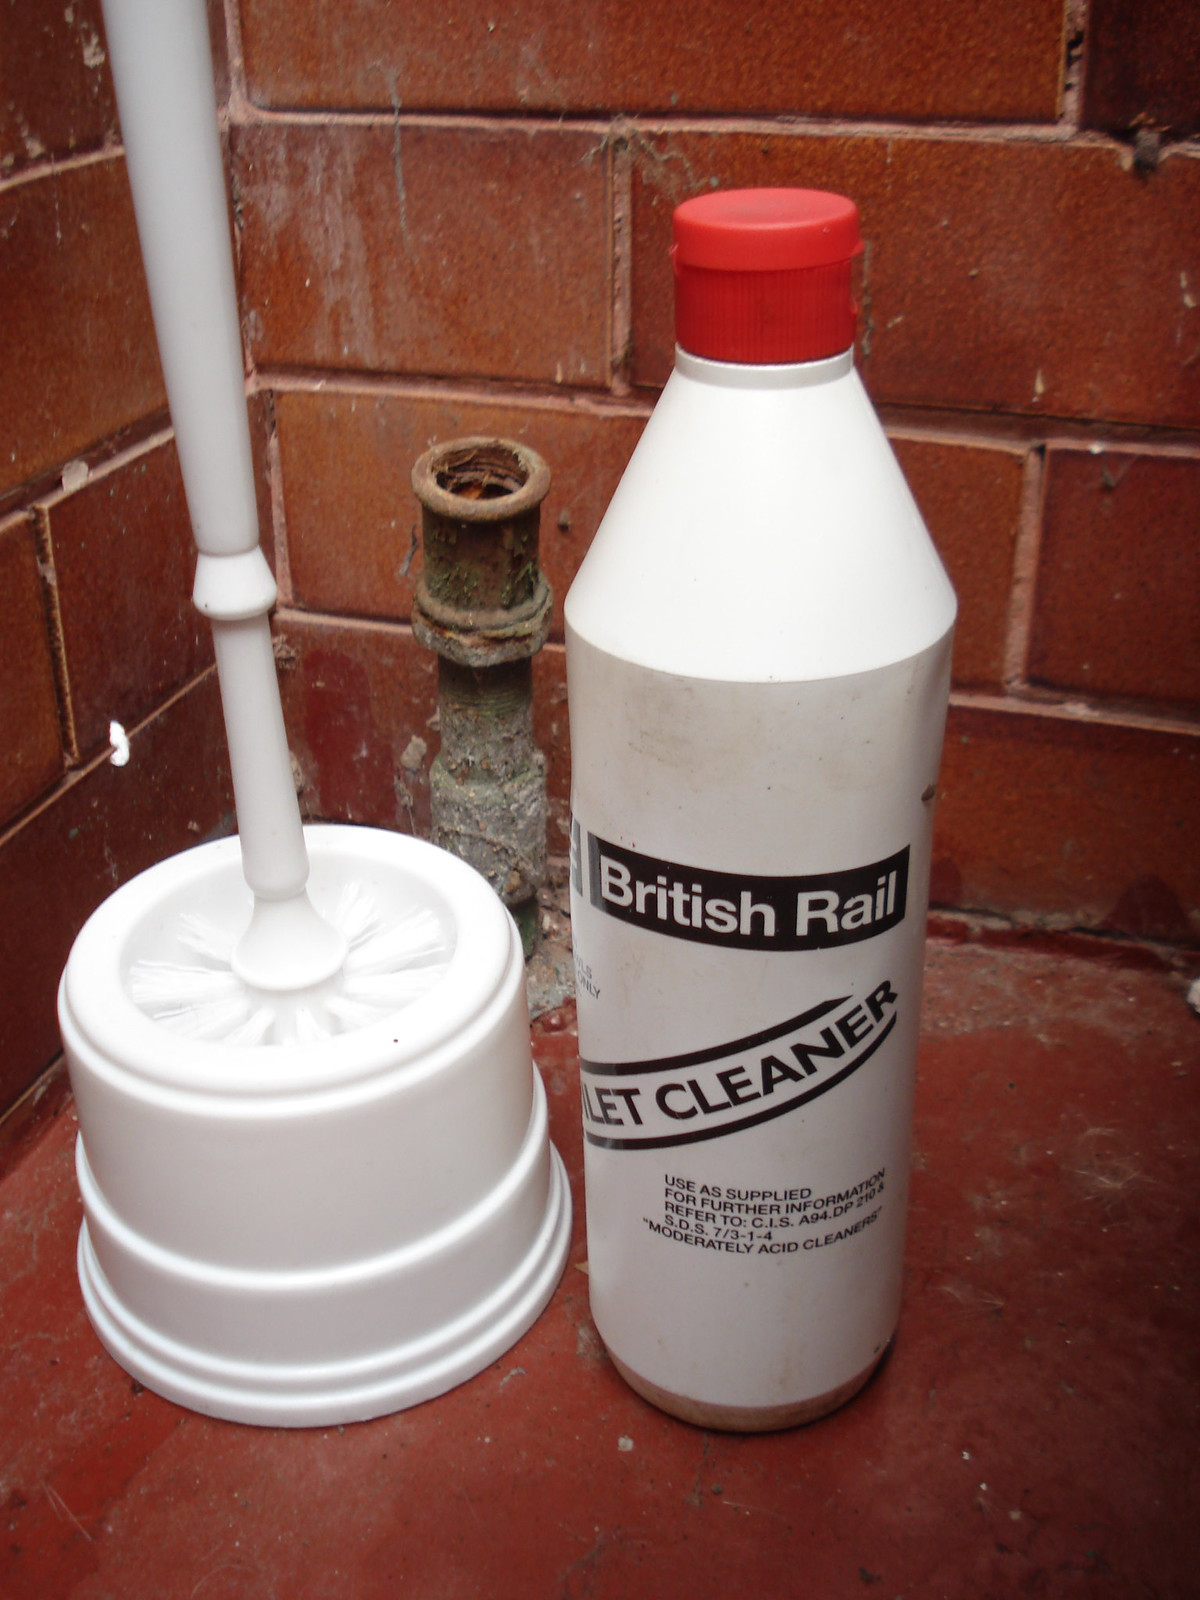 Vintage British Rail toilet cleaner